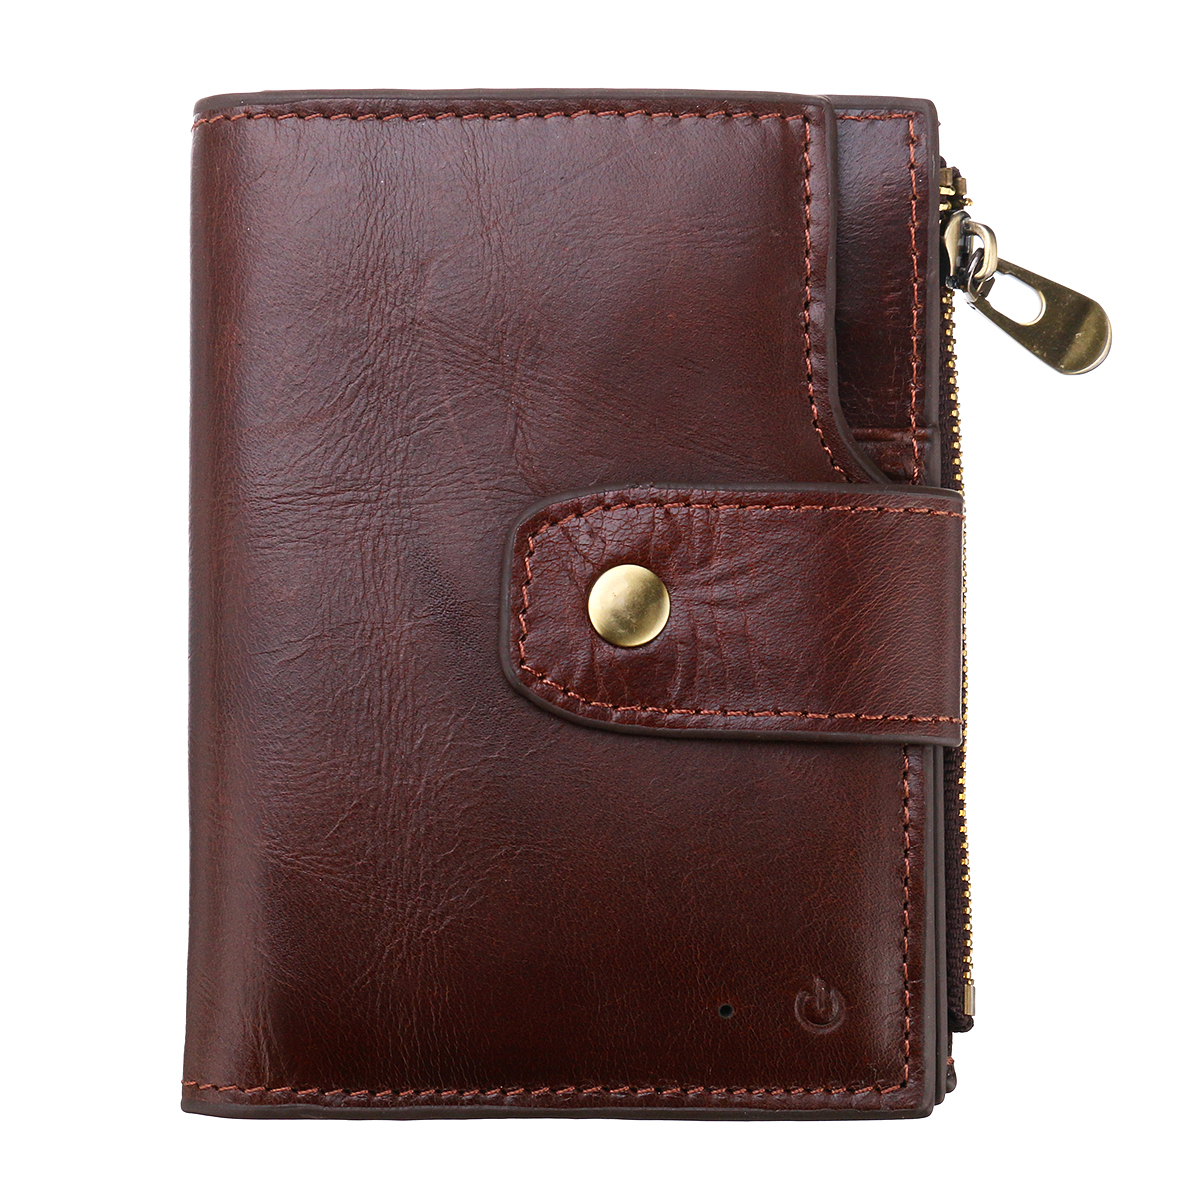 Features : Anti-Lost Taking Photo Forget the mobliephone Alarm Lost Record Record Specification : Interior: Interior Compartment, Photo Holder,Interior Slot Pocket,Card Holder,Note Compartment 3 Photo Window, 15 Card Holder, 1 Zipper Compartment Bluetooth #purse